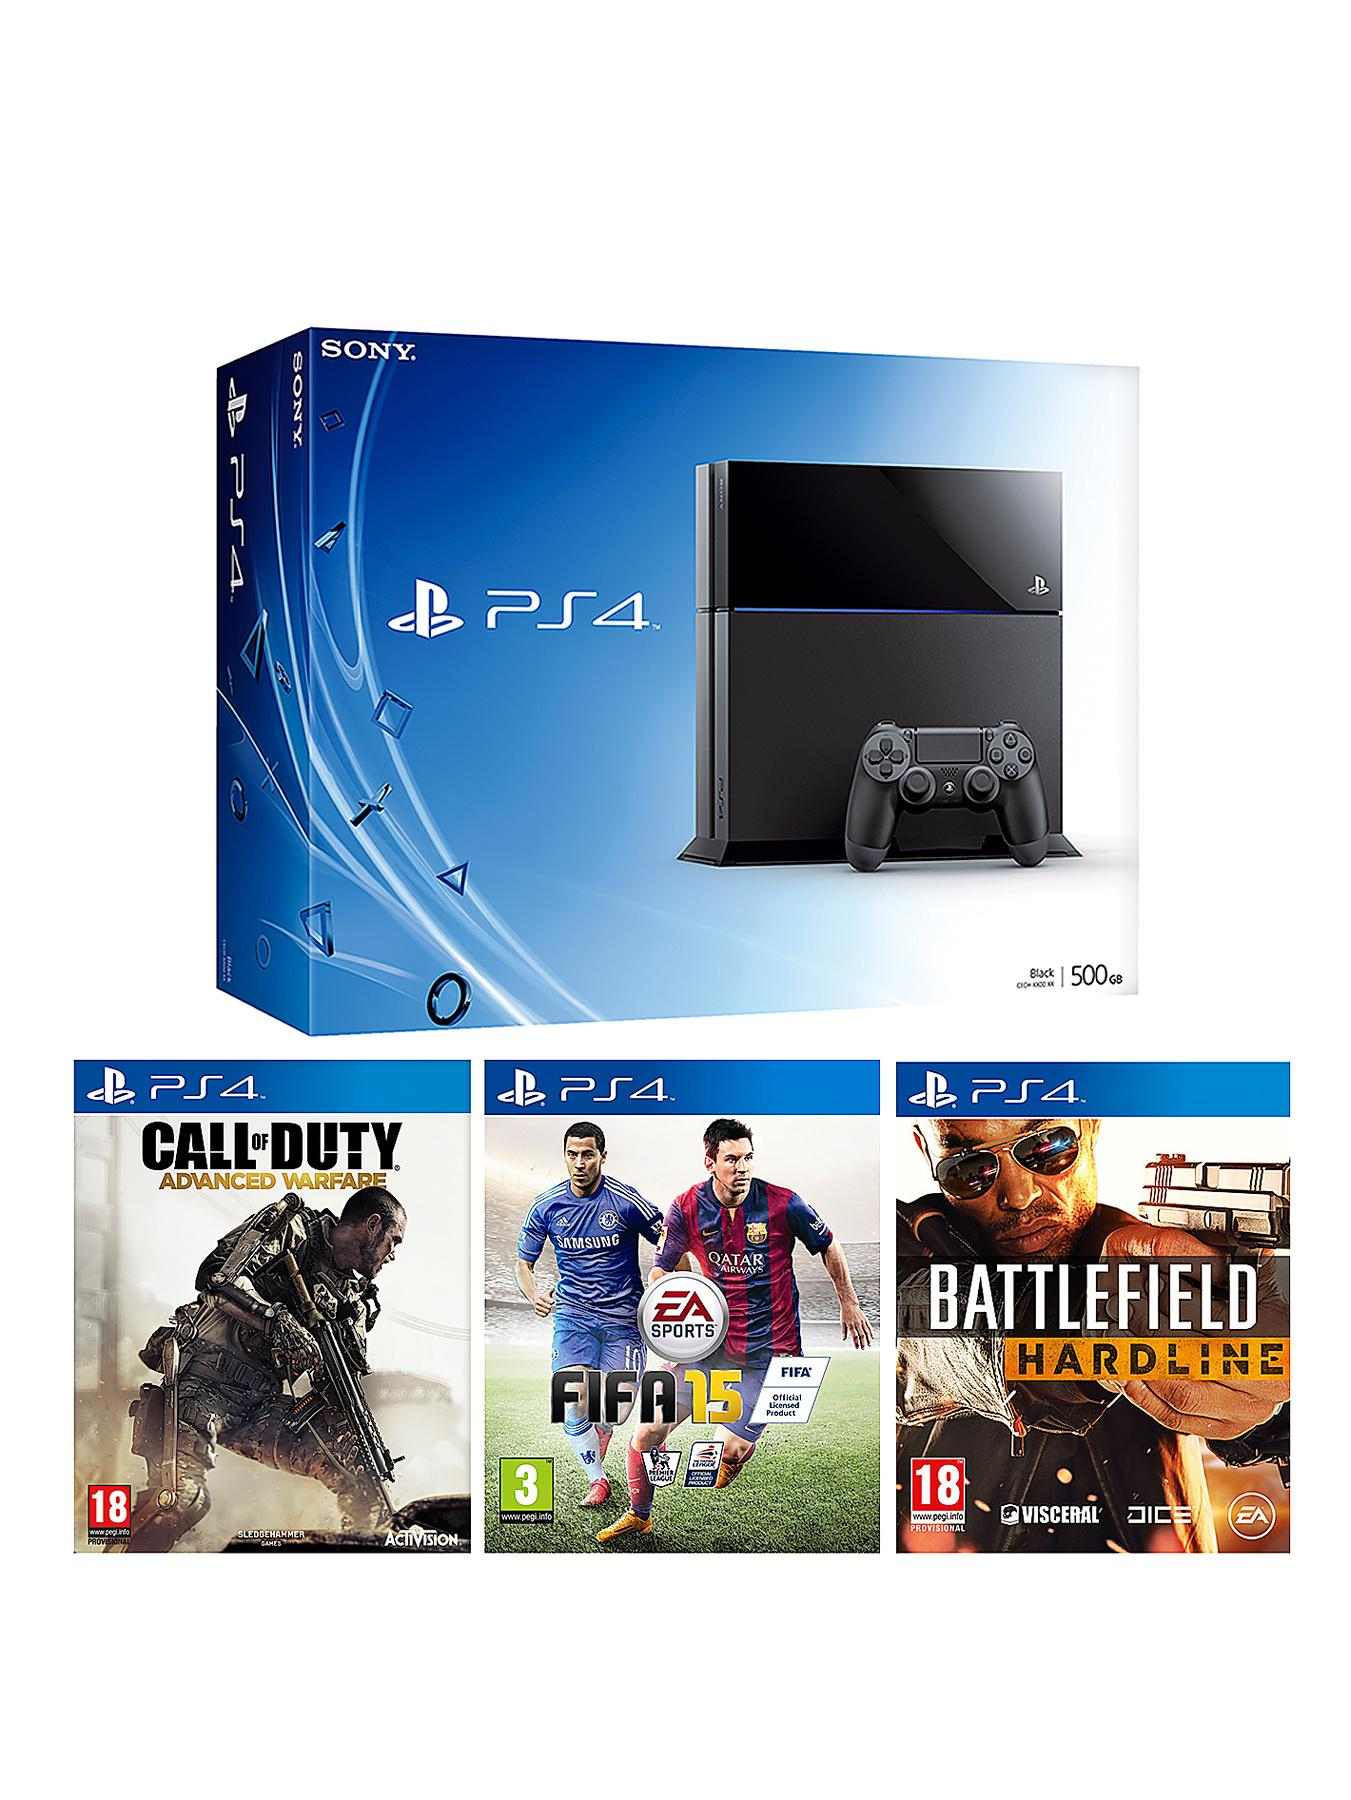 500Gb Black Console with Battlefield Hardline FIFA 15 Call of Duty Advanced Warfare